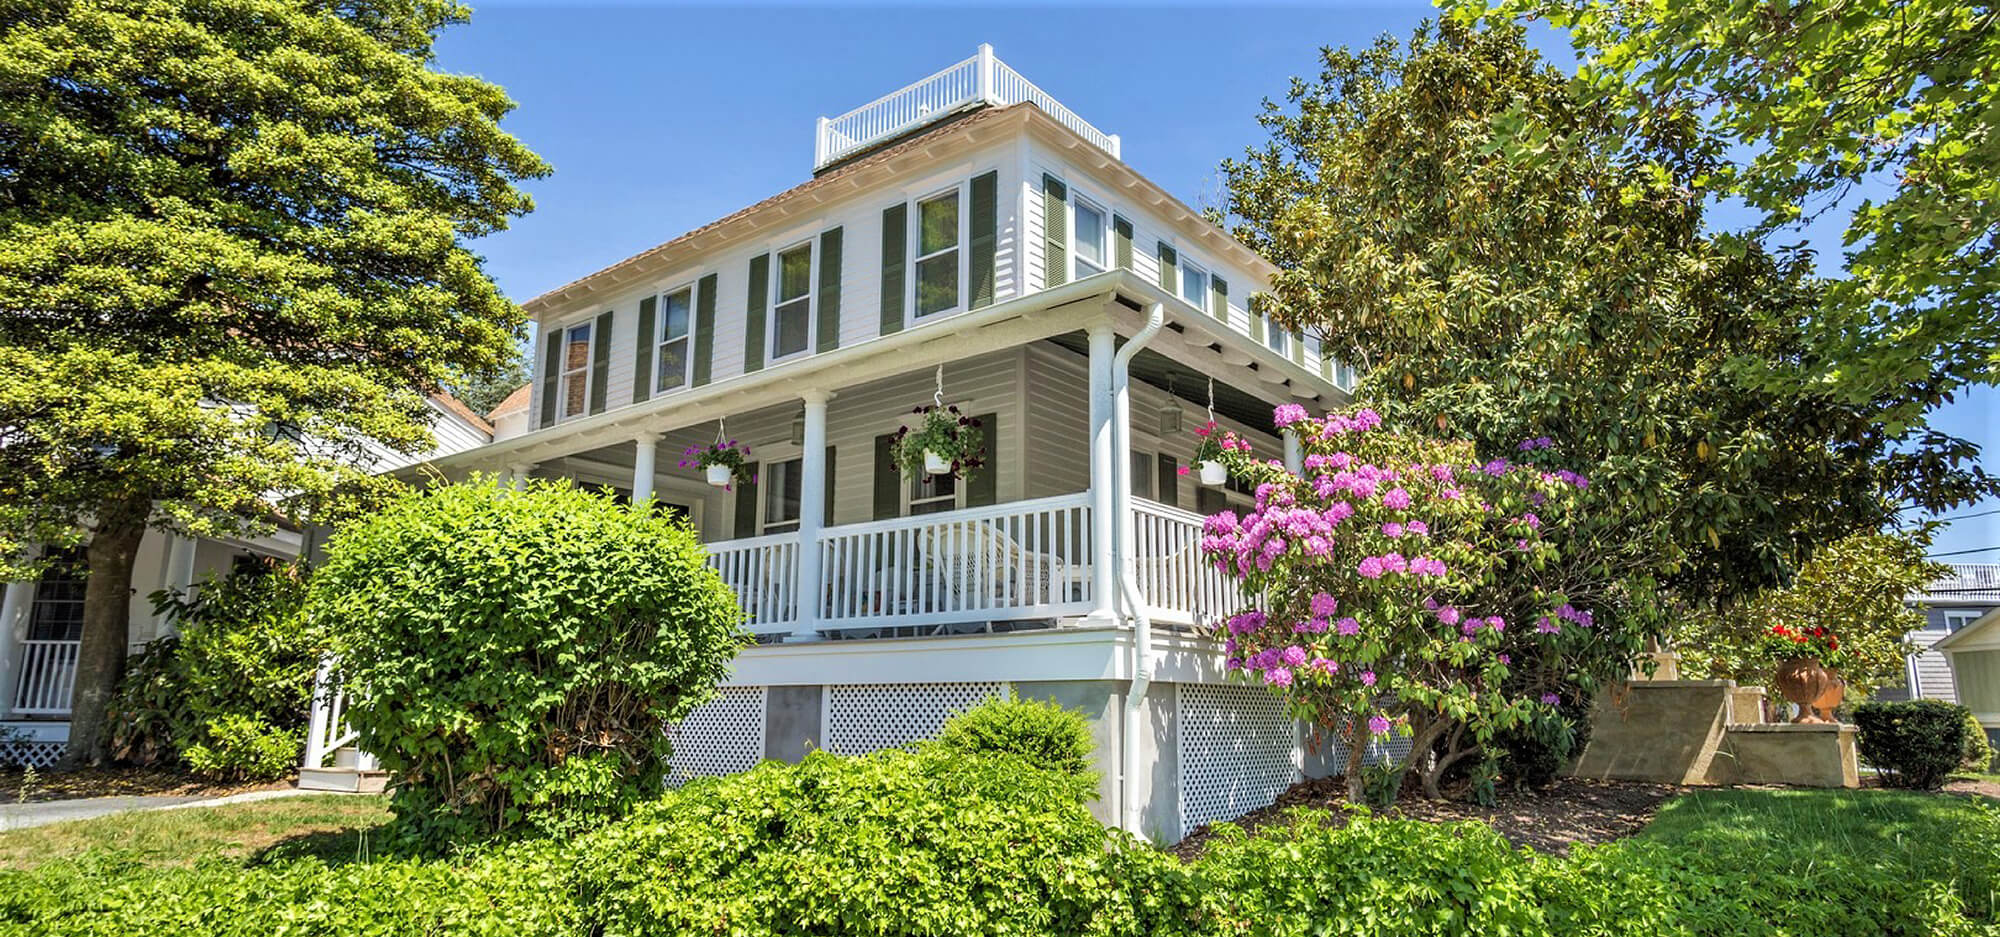 31 Olive Avenue, Rehoboth Beach : $2,047,000